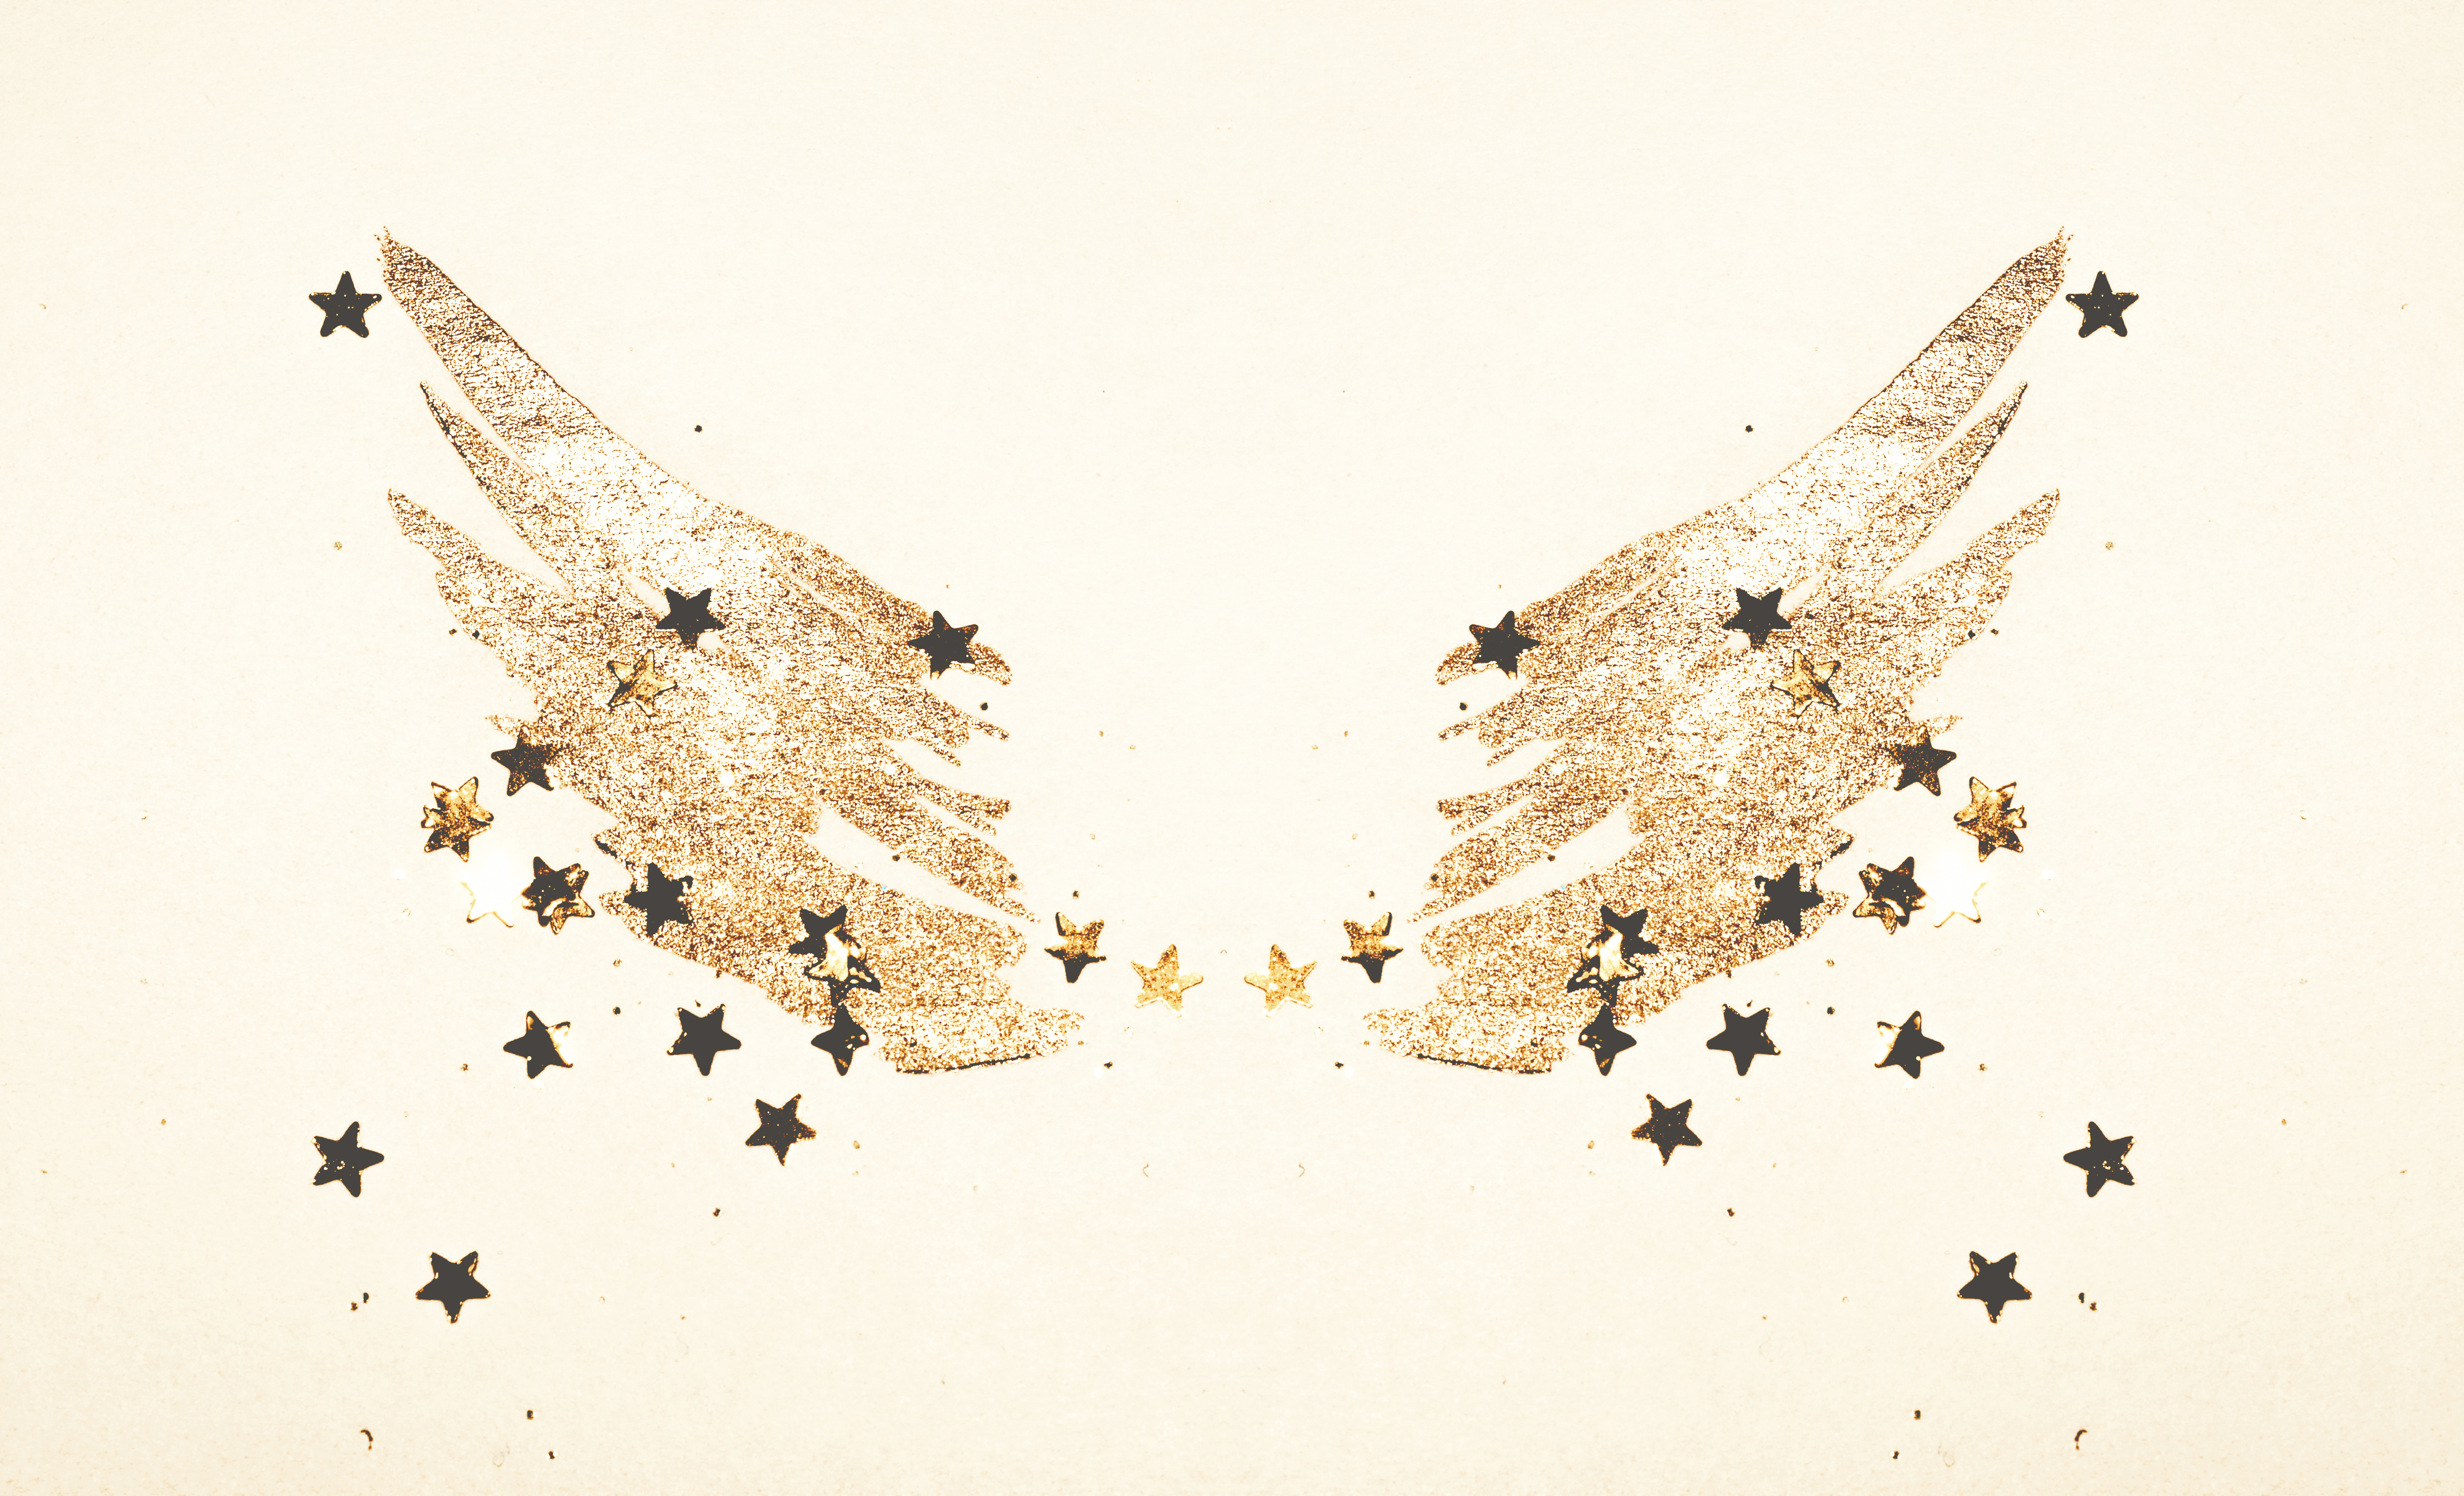 Golden glitter and glittering stars on abstract watercolor wings in vintage colors.